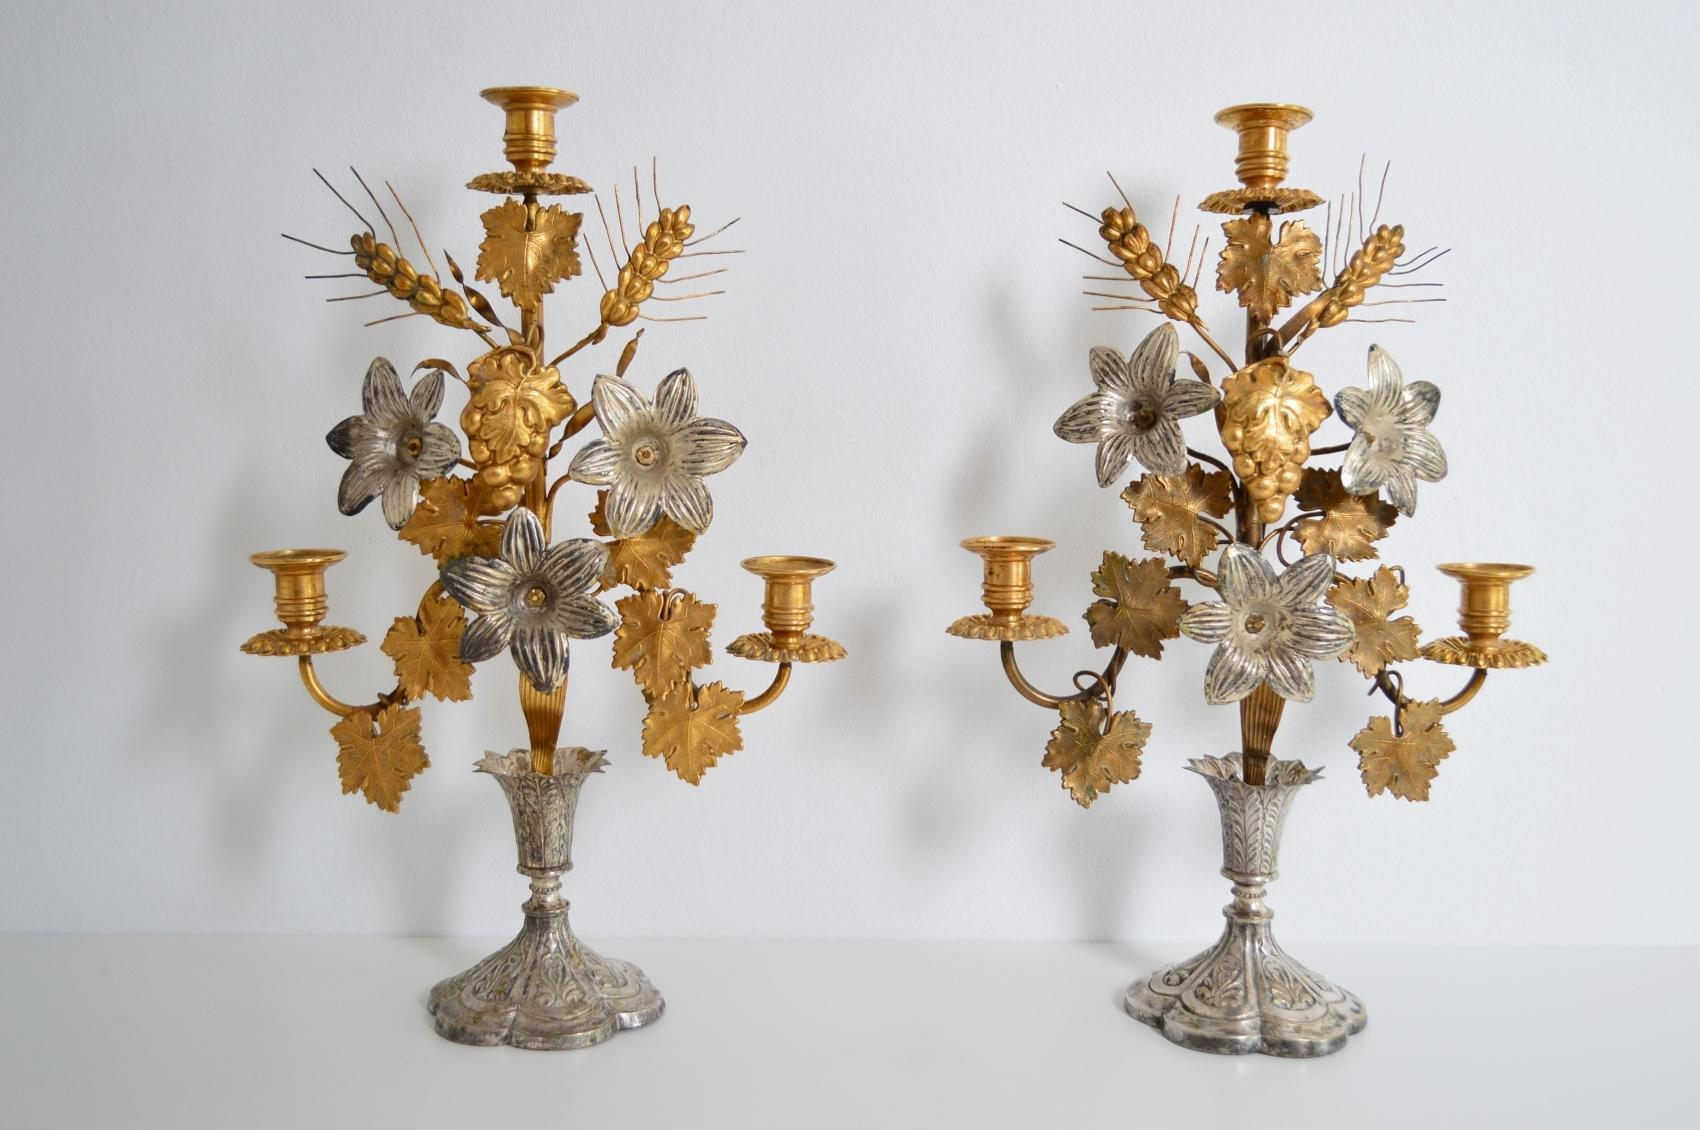 Antique French Candlesticks 1890s Set